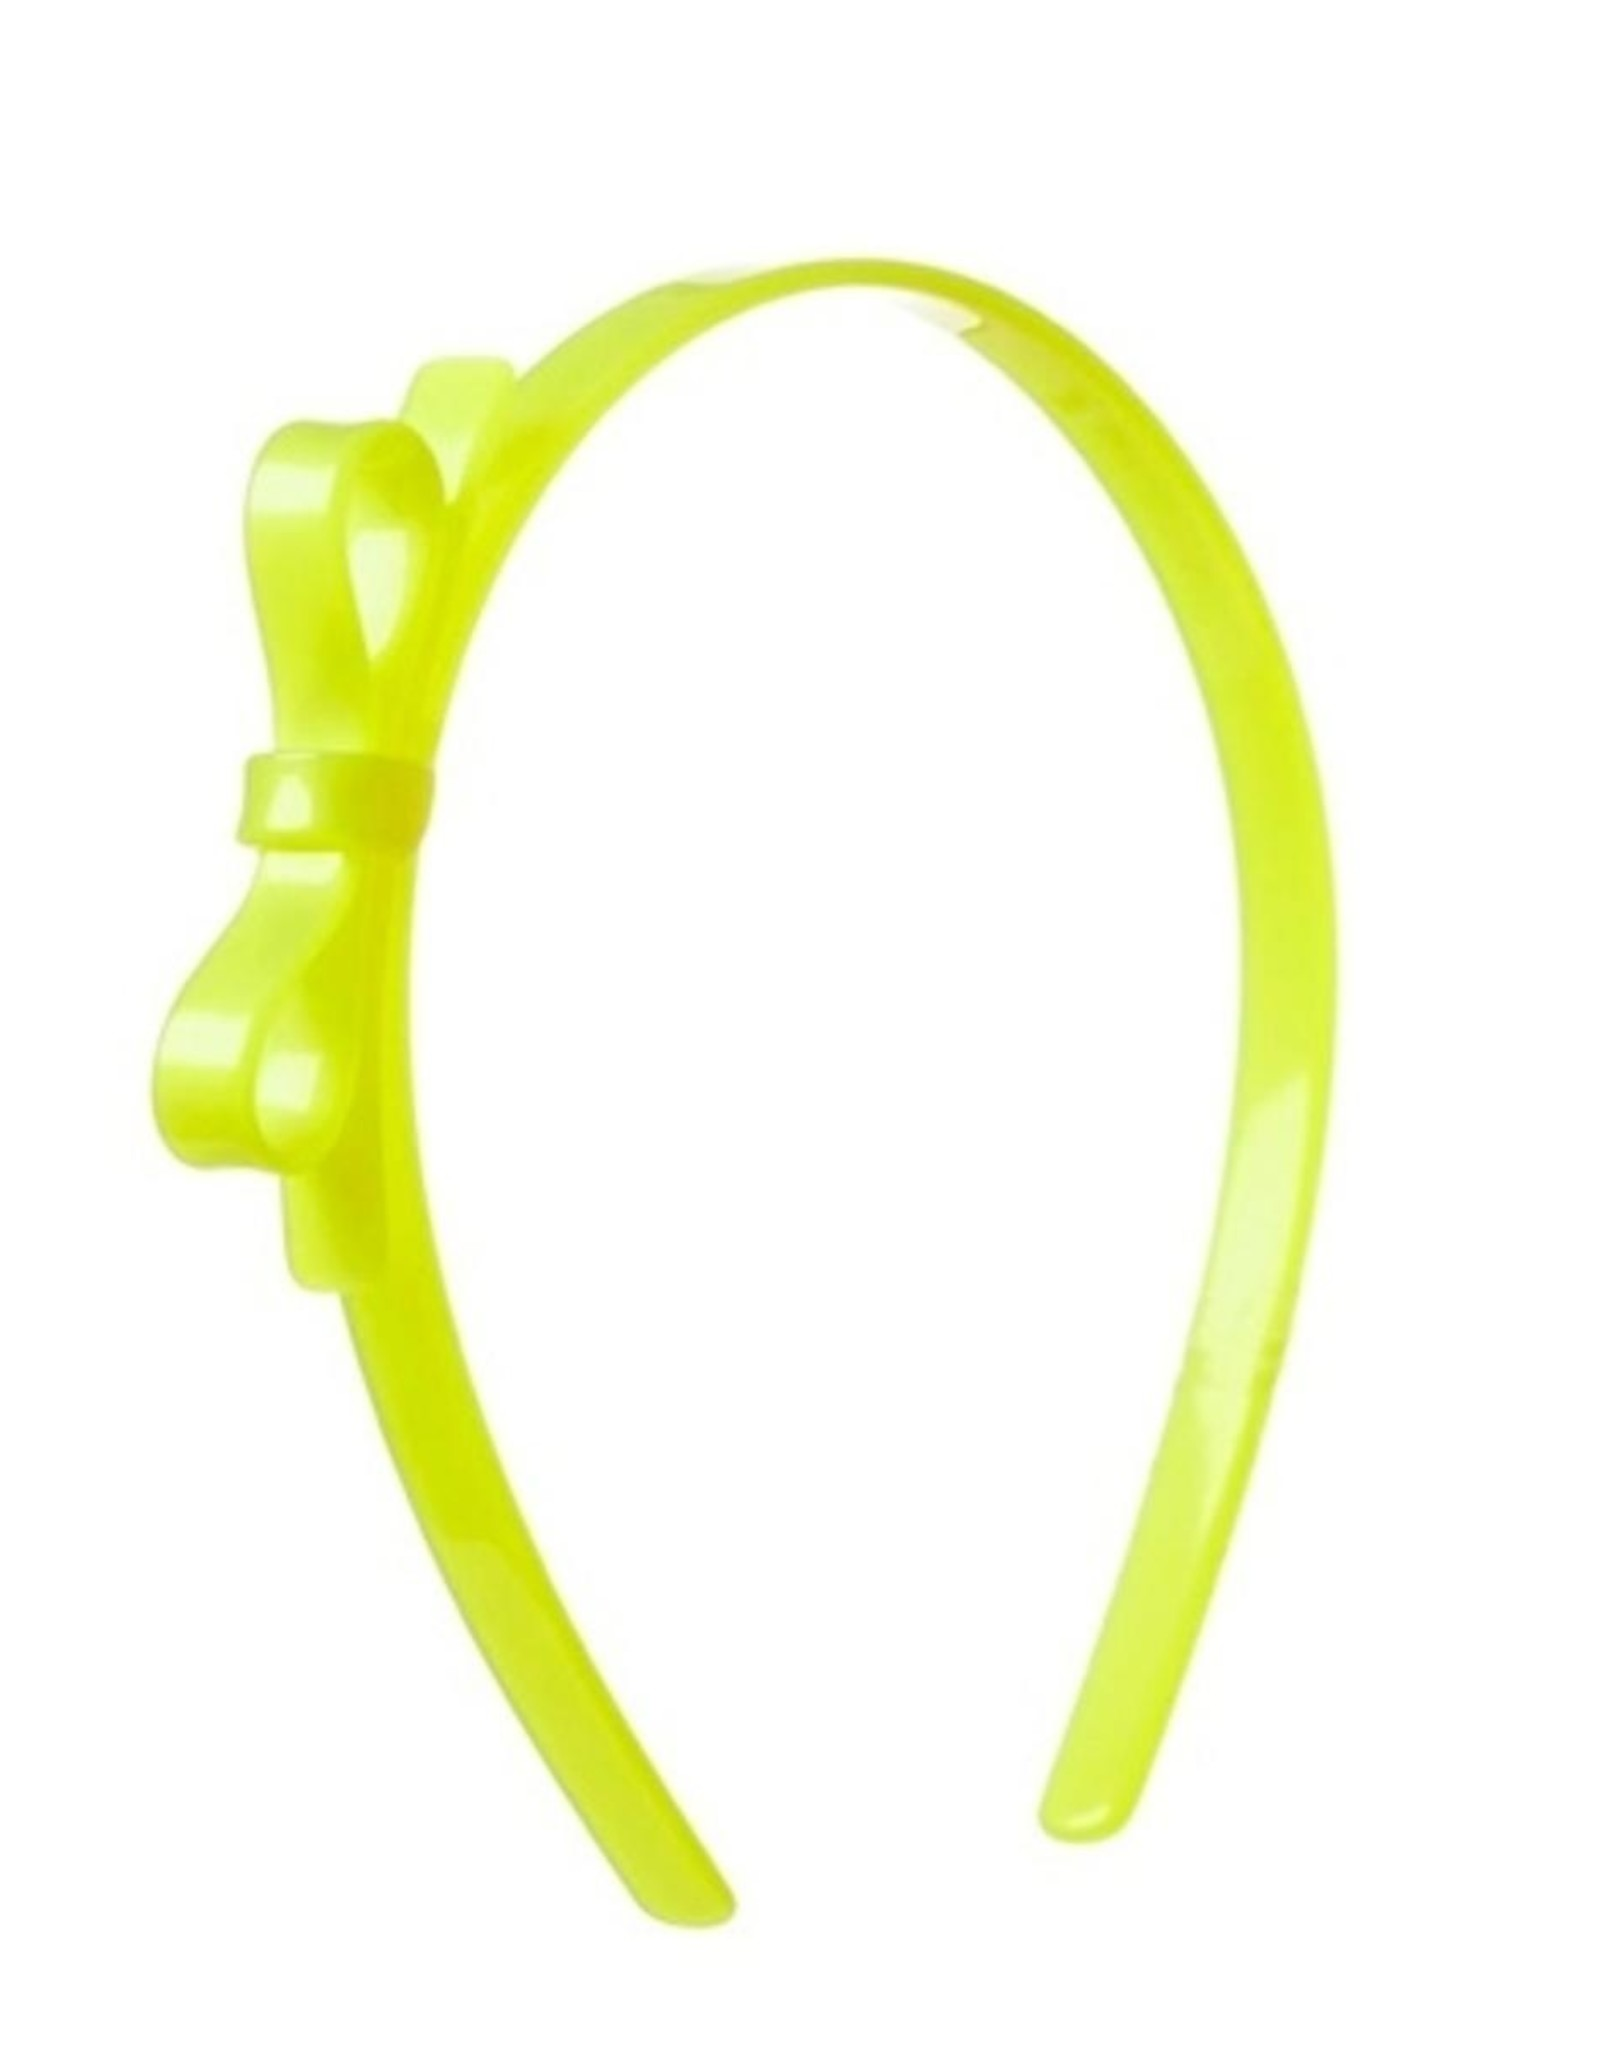 Lilies & Roses HB thin bow- neon yellow